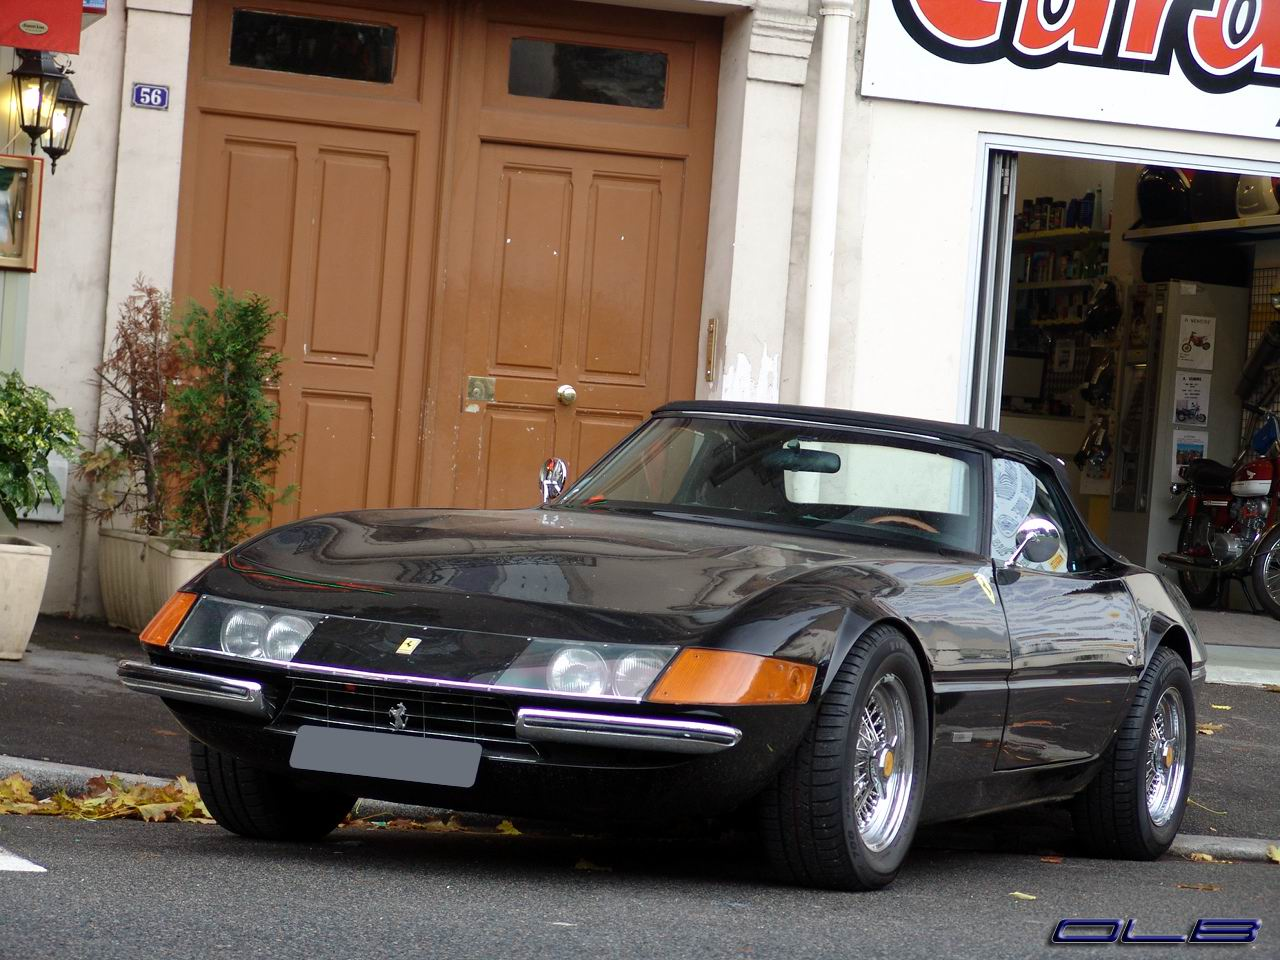 Ferrari Daytona photo 06